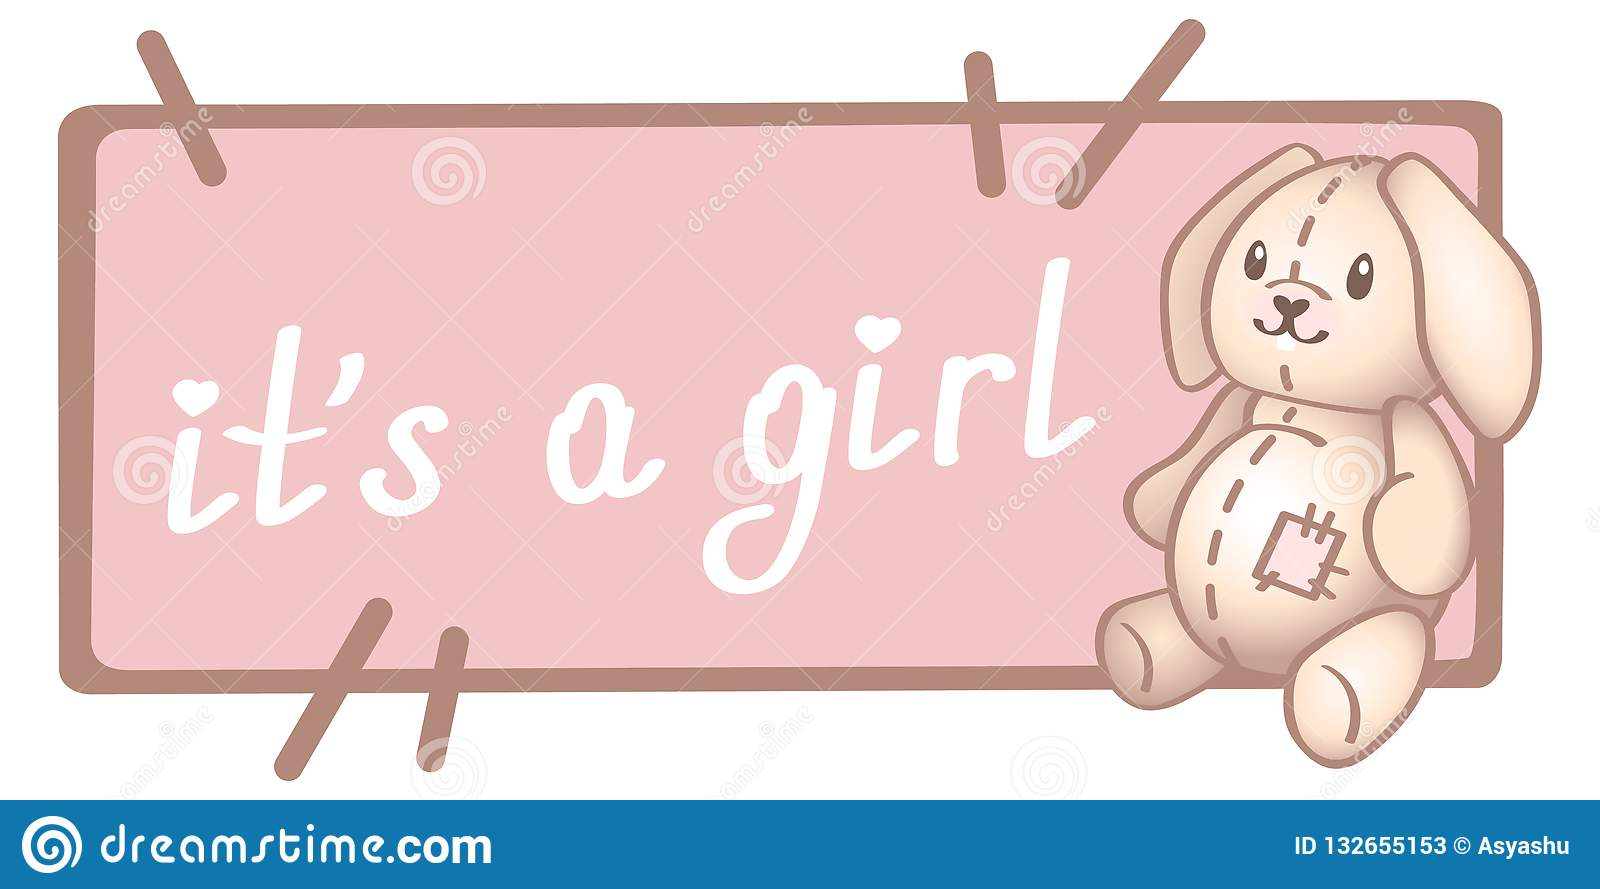 Baby birthday, invitation or greeting card, poster, template. Cute vector illustrations with new born baby toy. It is a girl card